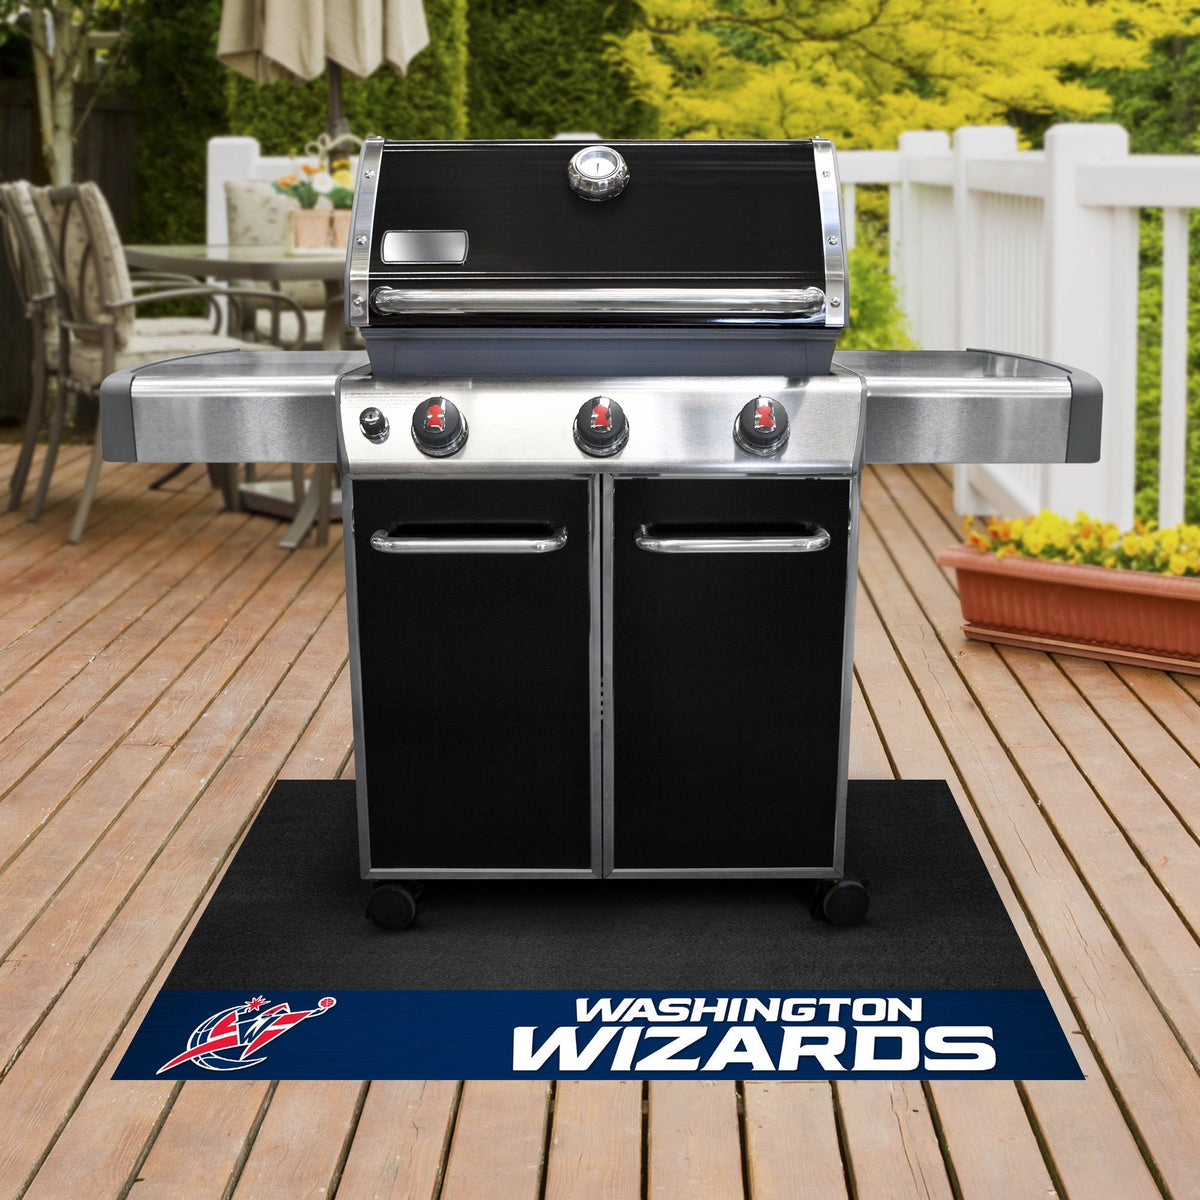 NBA - Grill Mat NBA Mats, Grill Mat, NBA, Home Fan Mats Washington Wizards